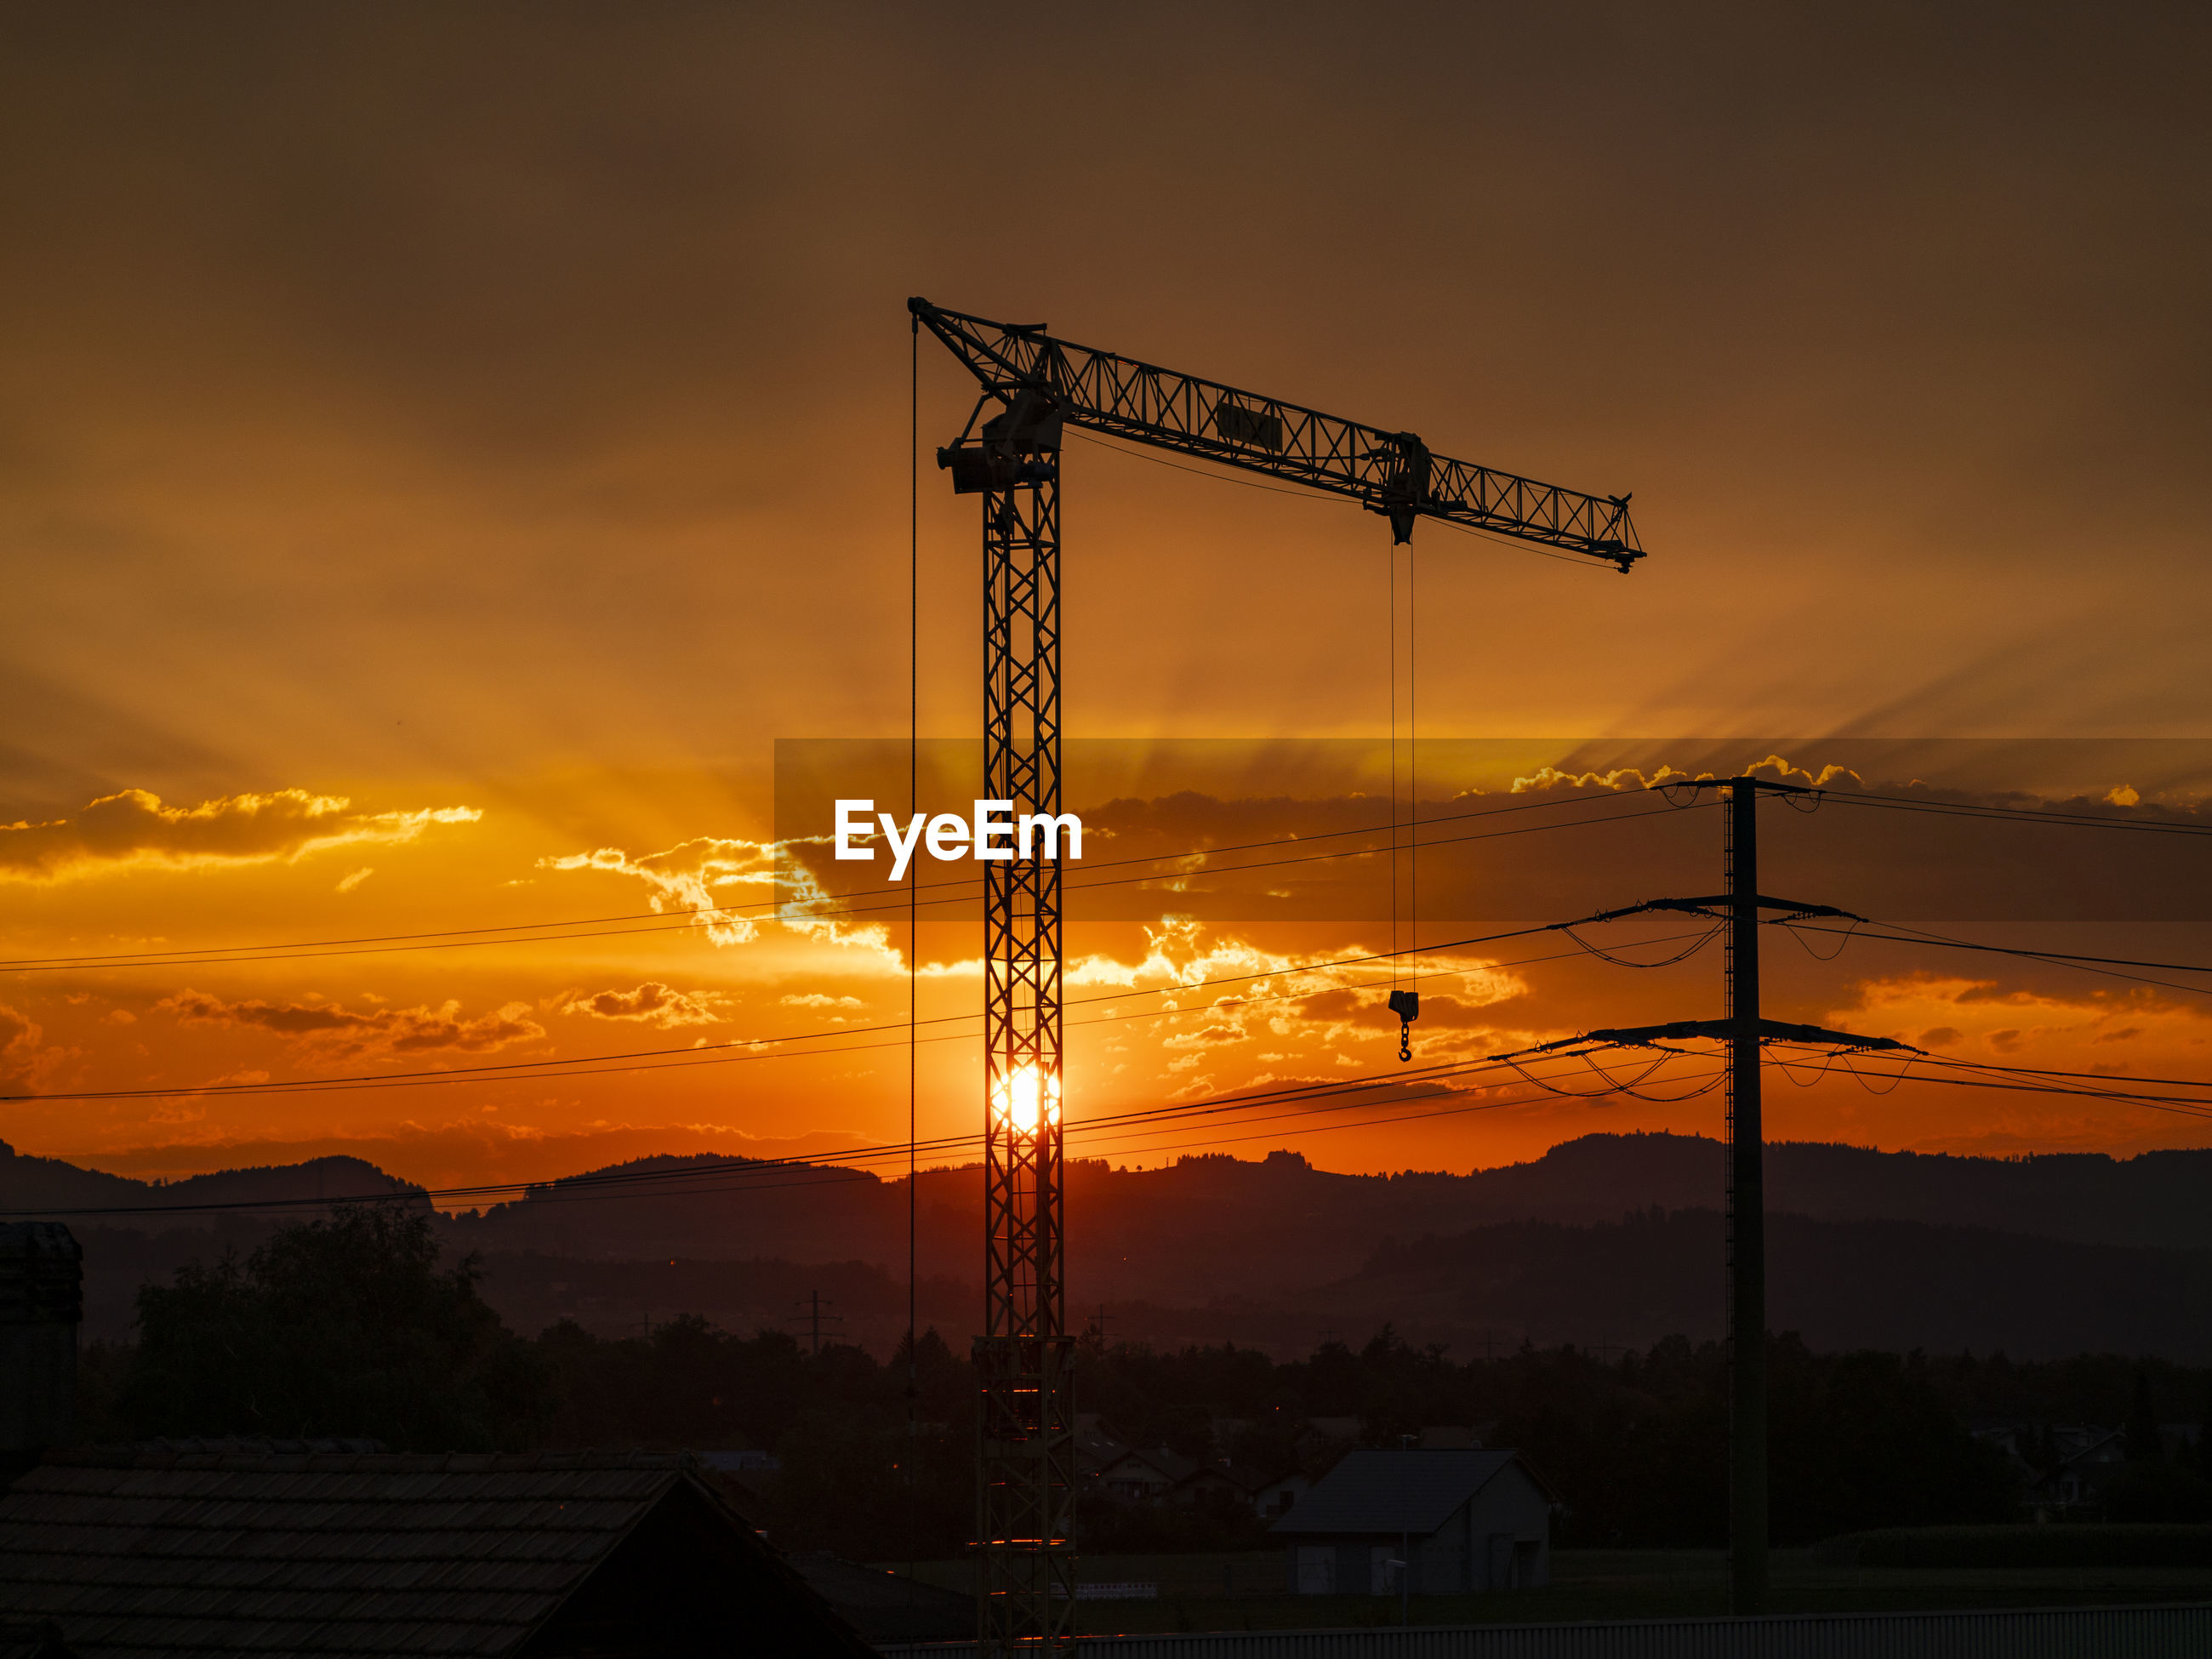 SILHOUETTE OF CRANE AT CONSTRUCTION SITE DURING SUNSET